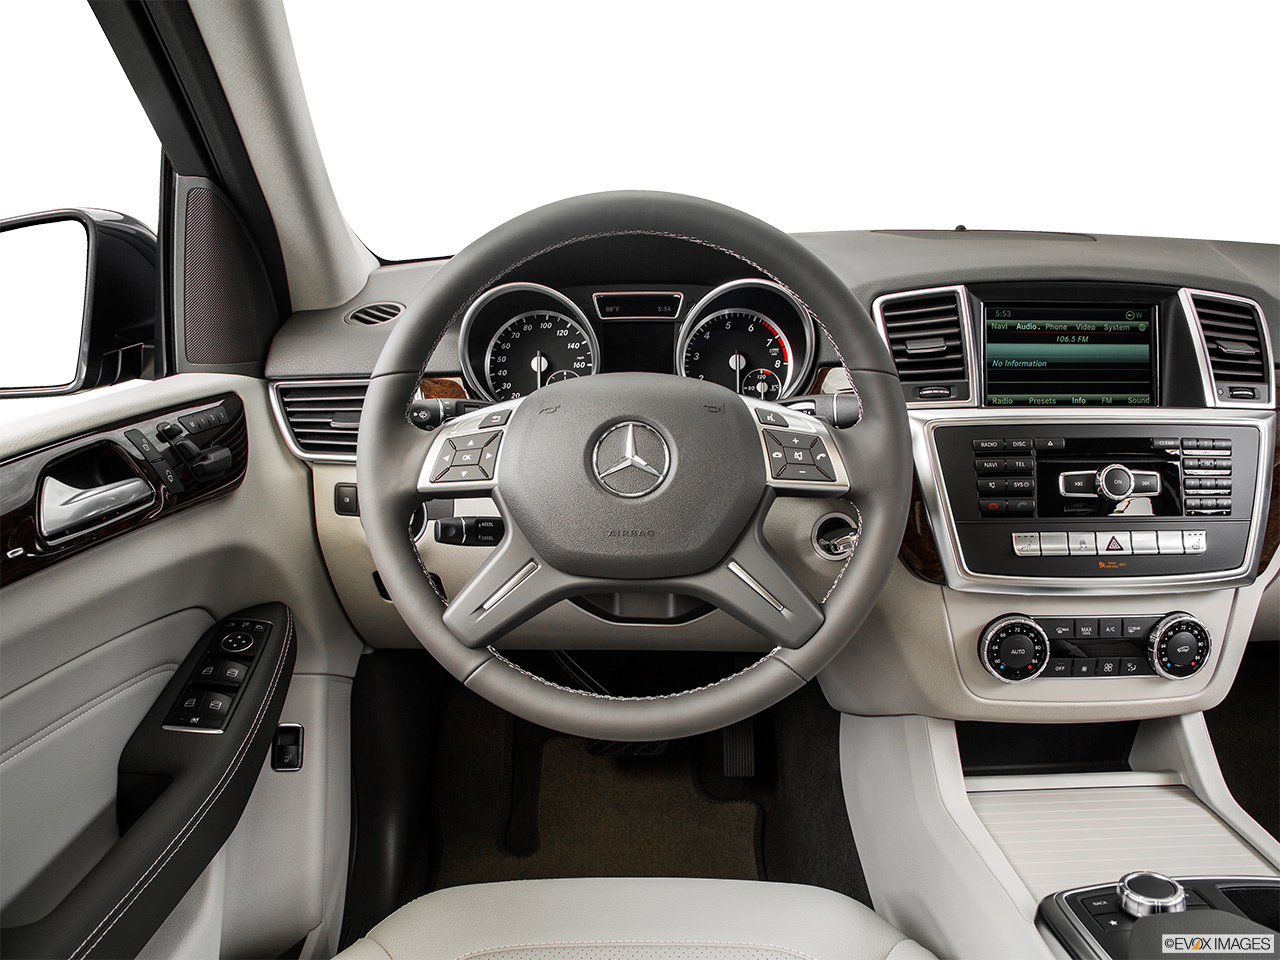 2015 Mercedes-Benz M-Class 4MATIC ML350 - Front angle view